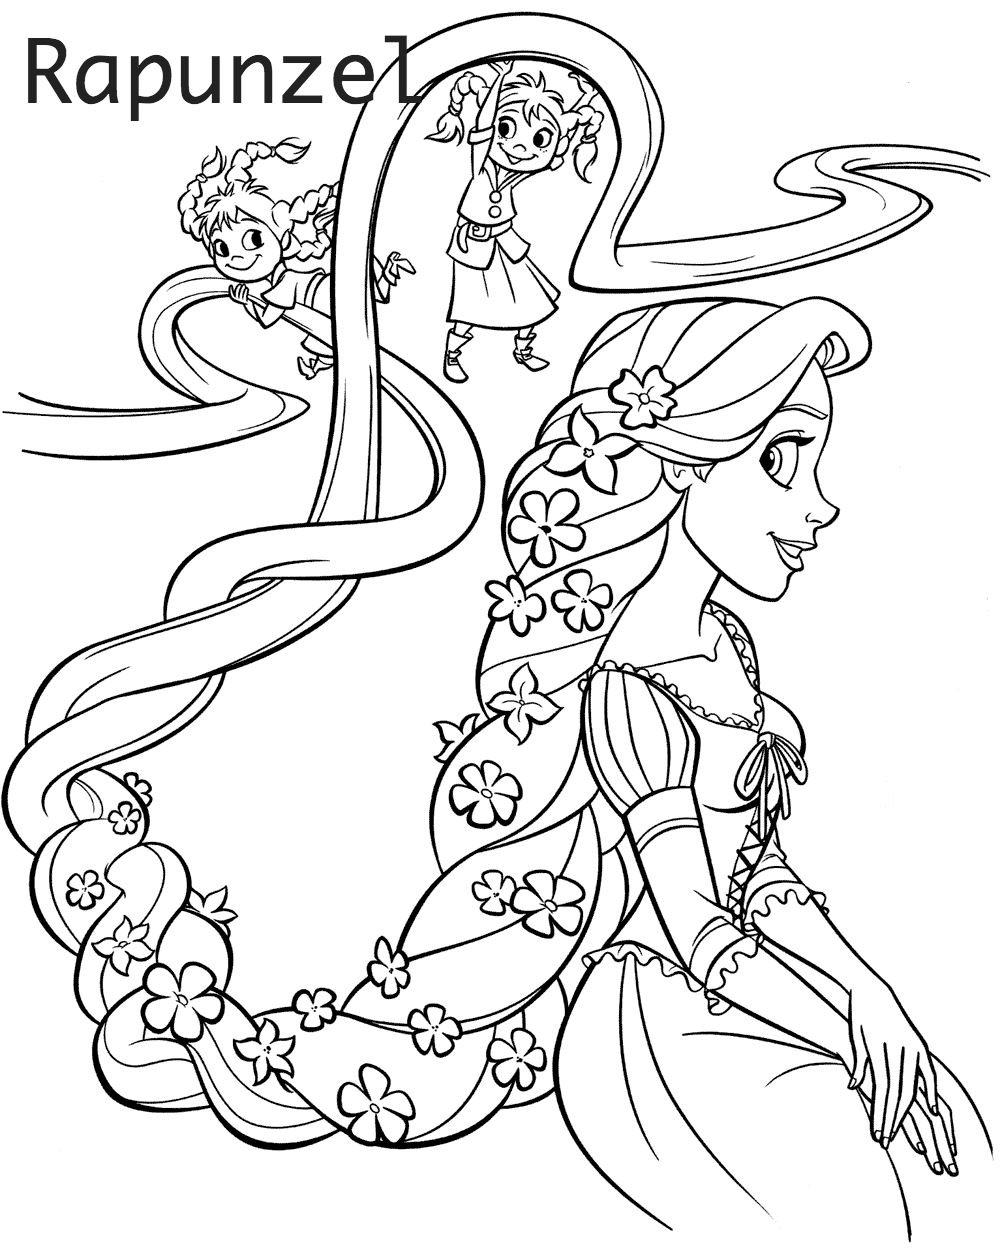 Free Coloring Pages Of Rapunzel Elsa Anna